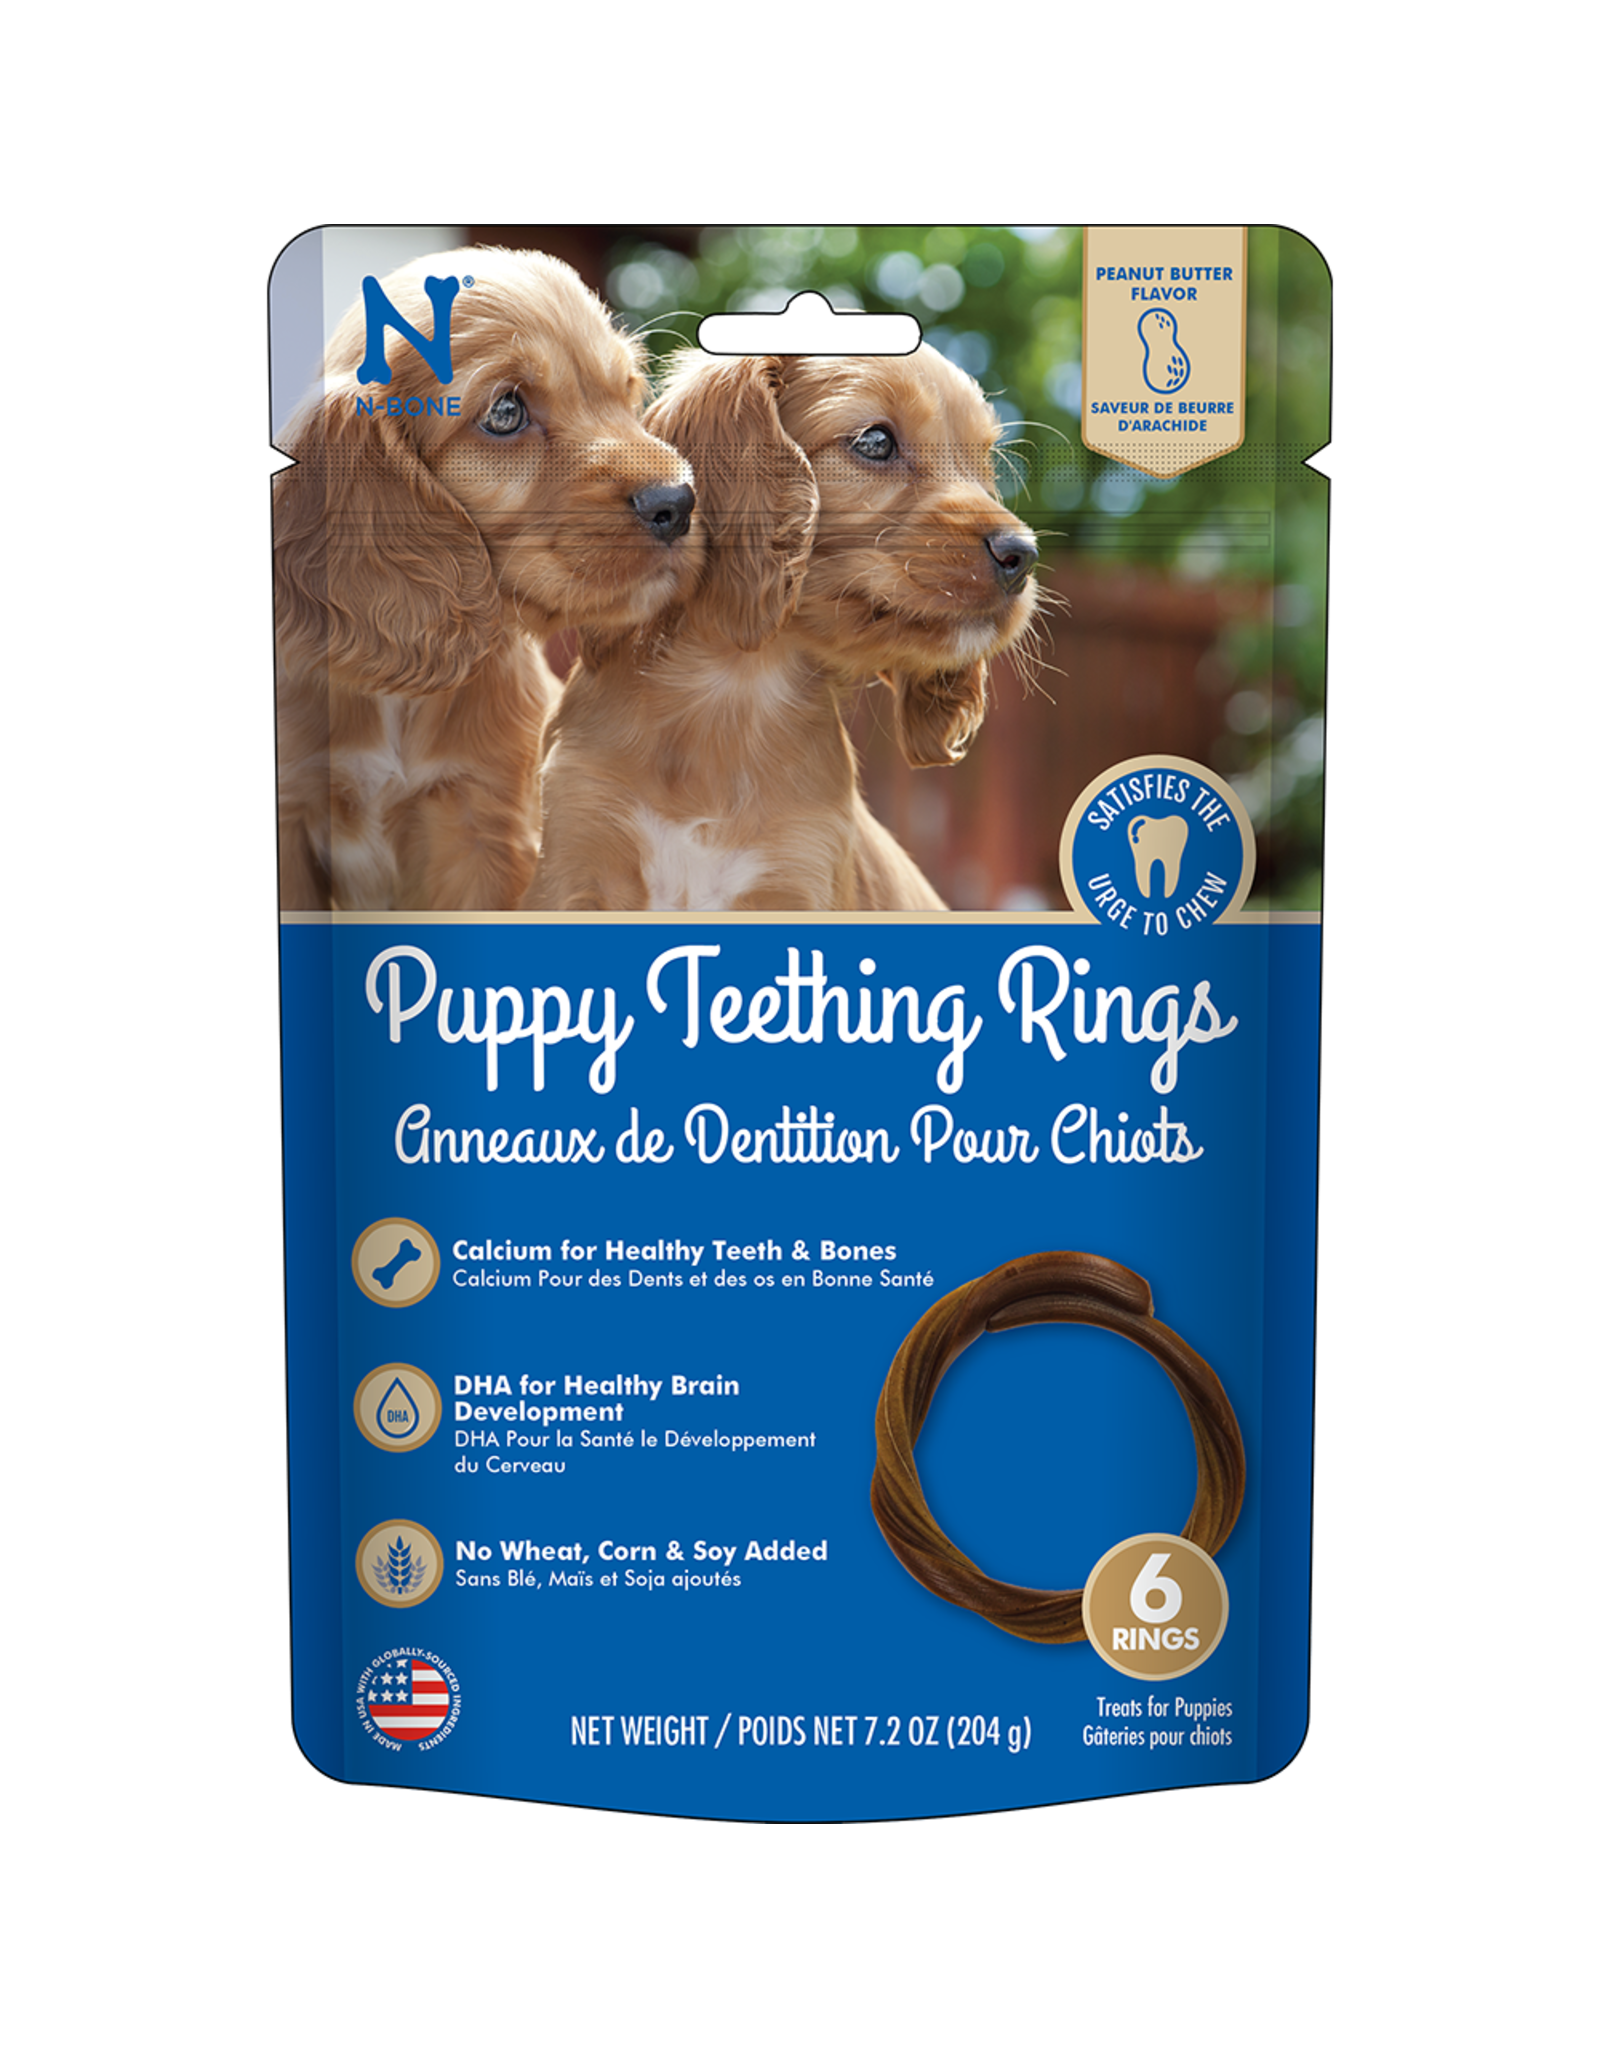 N-Bone N-Bone® Puppy Teething Rings Peanut Butter